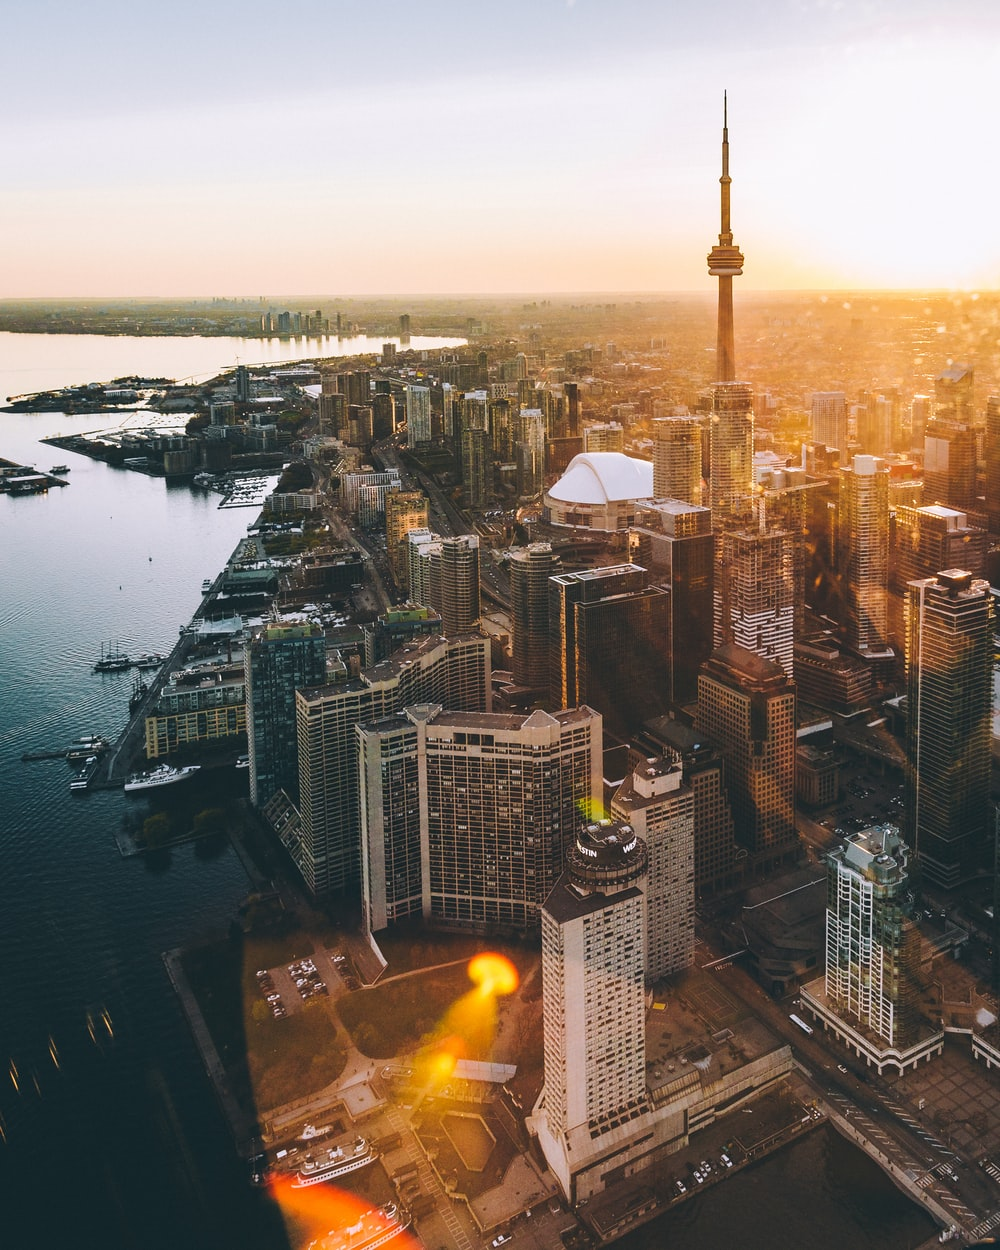 100+ Toronto Pictures [Stunning] | Download Free Images on